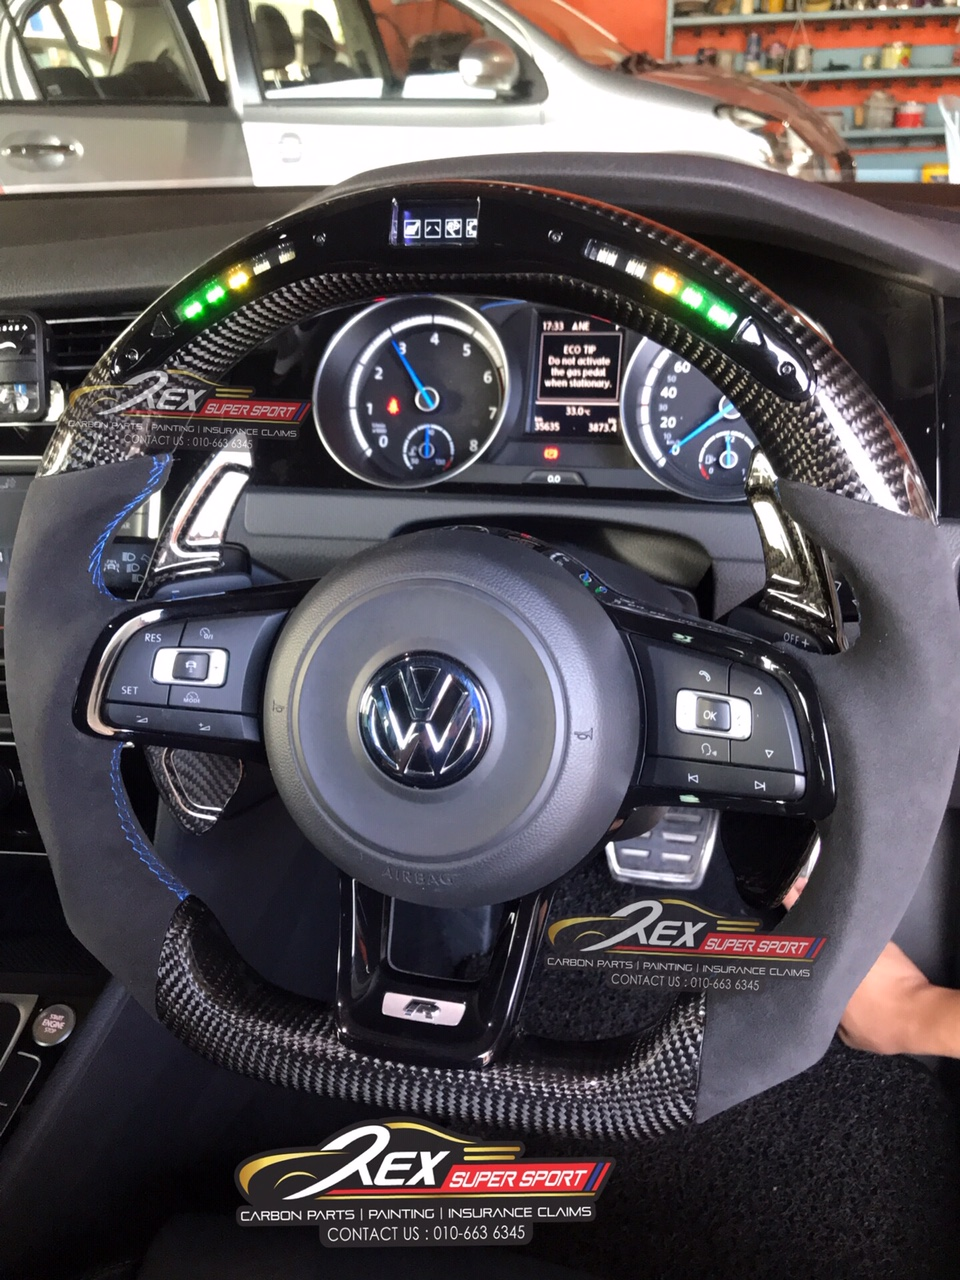 Vw Performance Led Digital Carbon Fiber Steering Rexsupersport Specializes In Providing Carbon Fibre Parts And Accessories